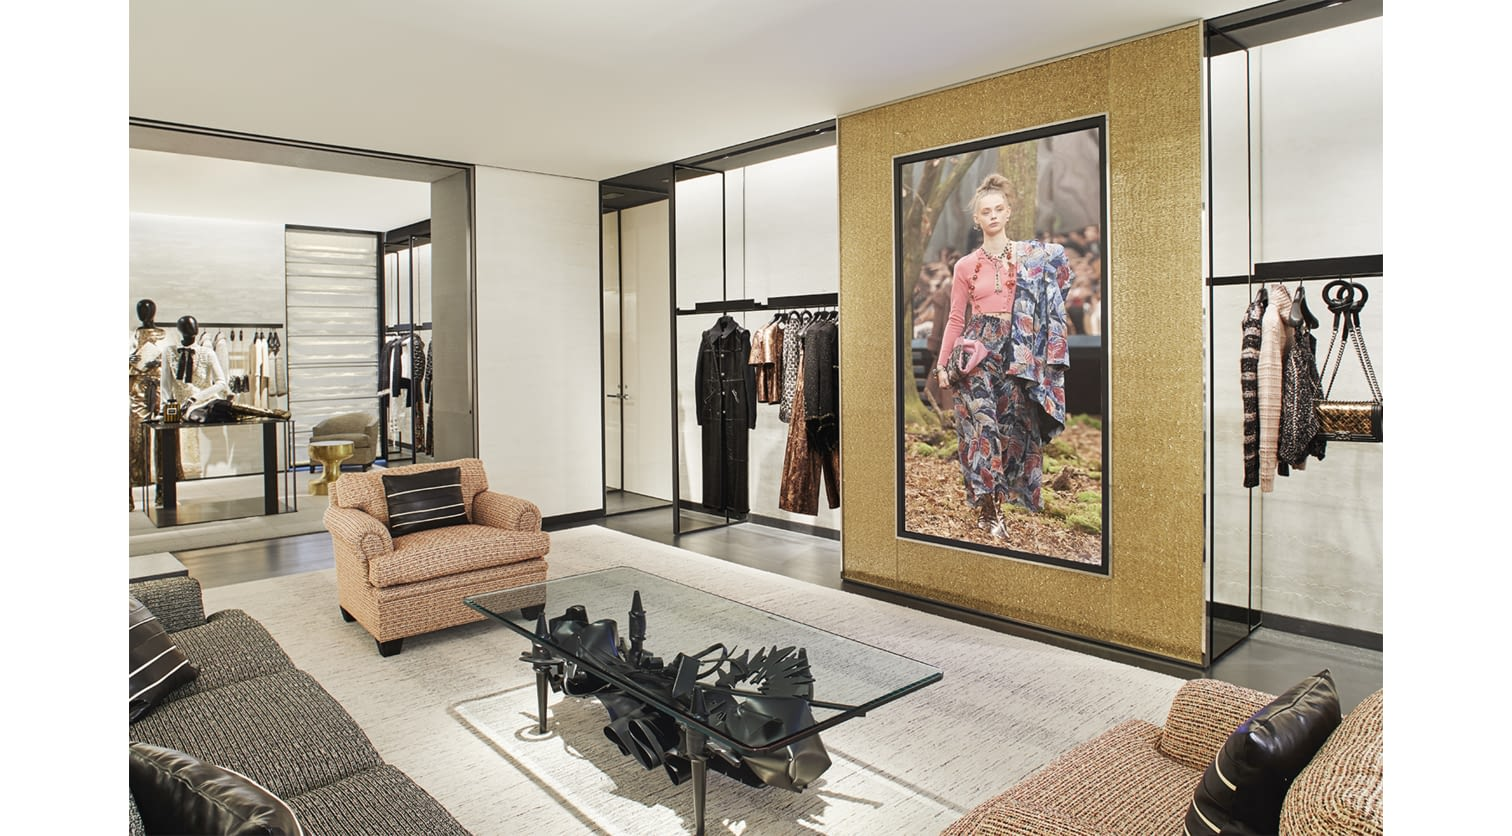 19_The_NYC_57th_street_flagship_reopening_pictures_by_Sam_Frost_LD.jpg